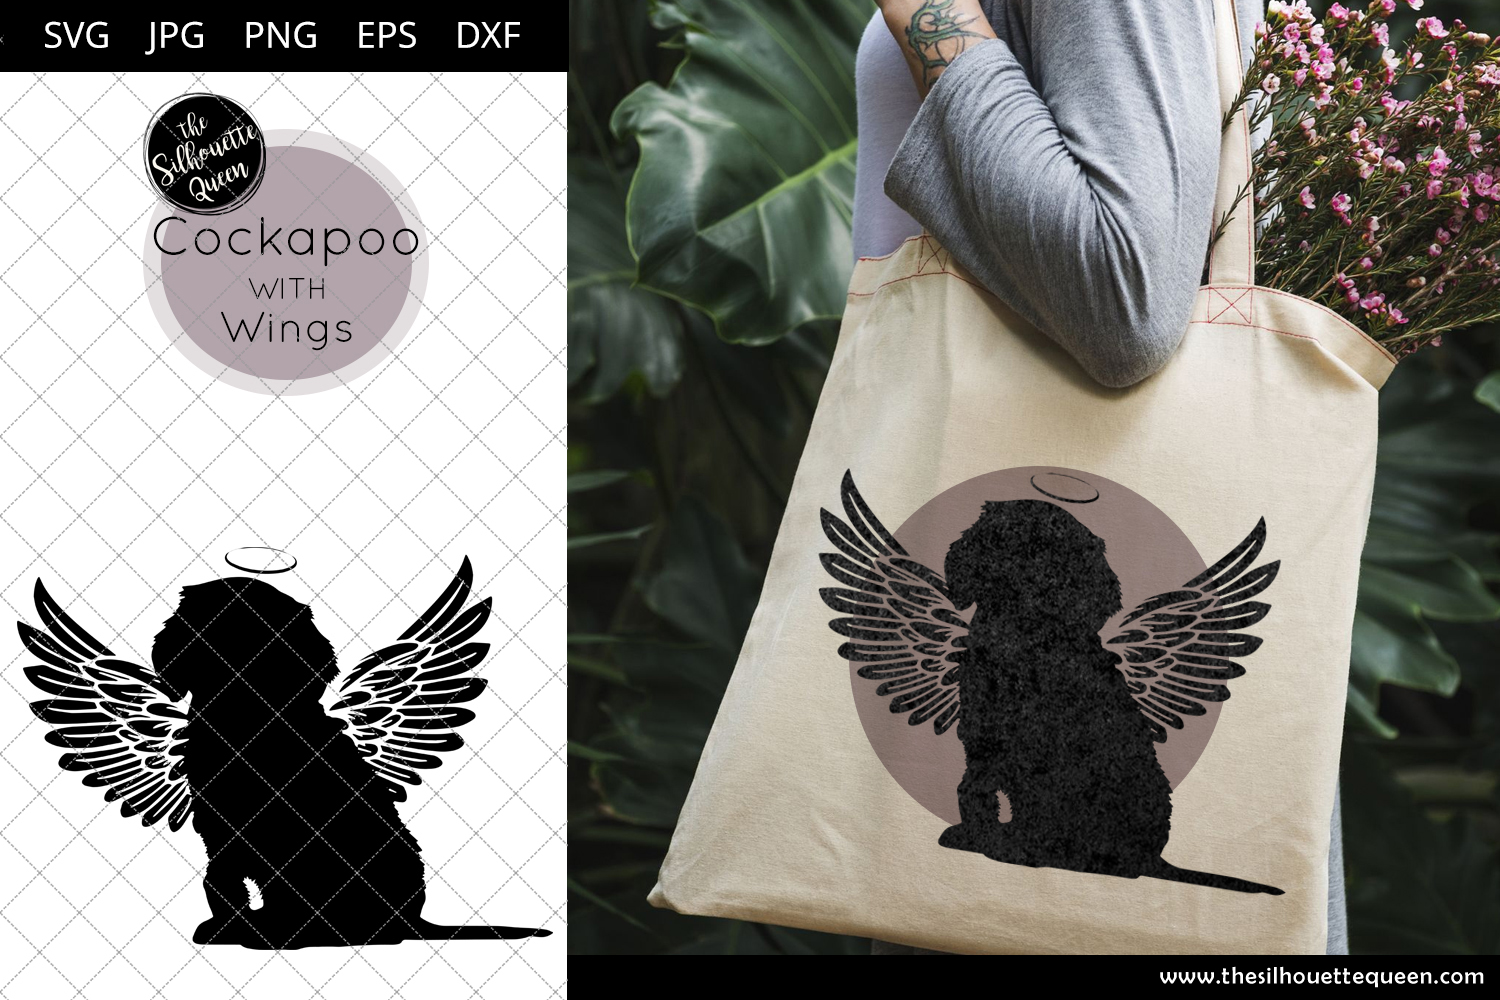 Download Free Cockapoo 10 With Wings Graphic By Thesilhouettequeenshop for Cricut Explore, Silhouette and other cutting machines.